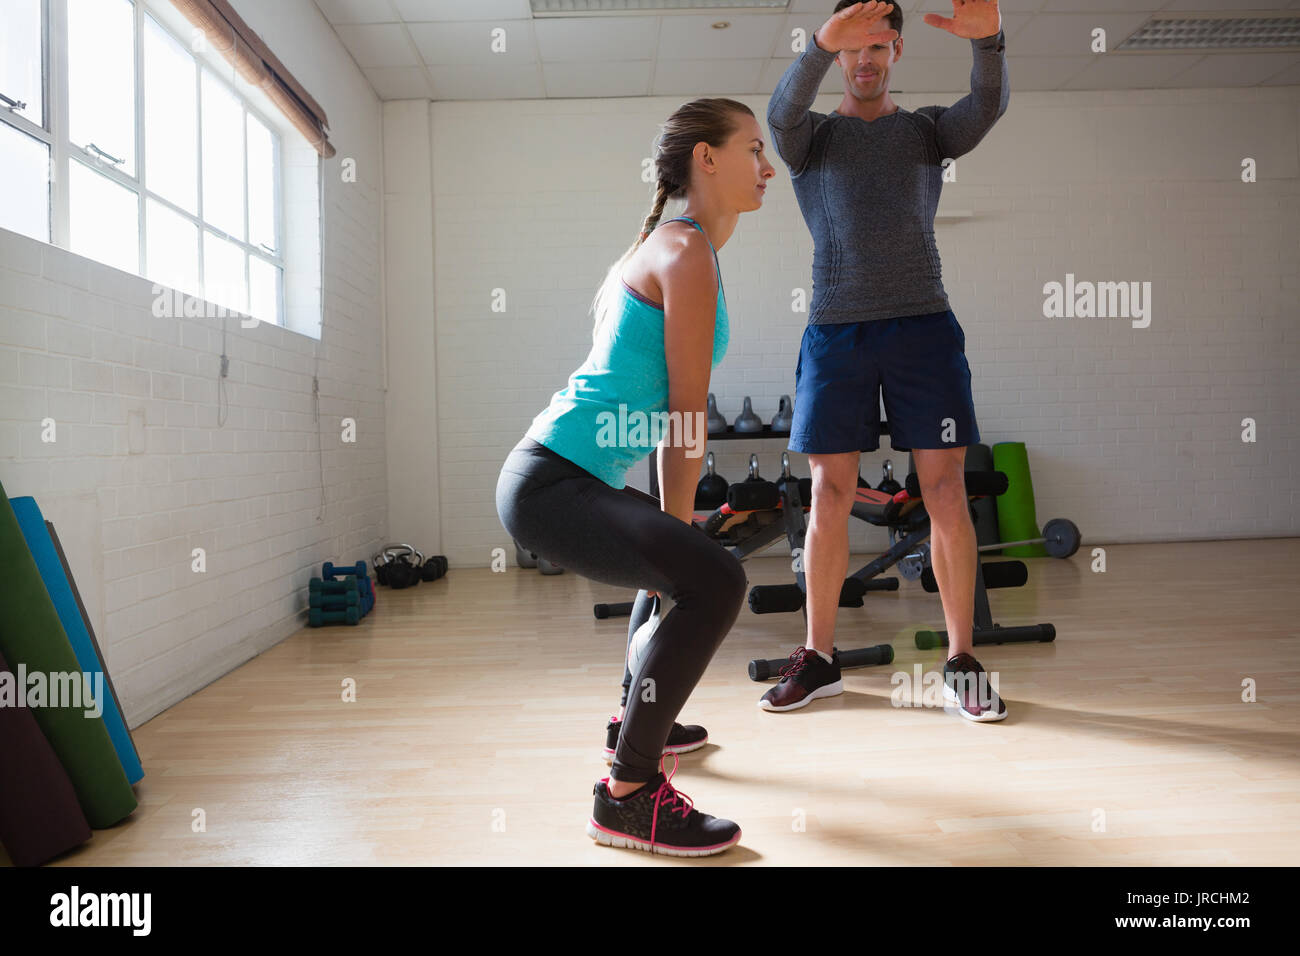 Male trainer training woman in lifting kettlebells at fitness studio - Stock Image